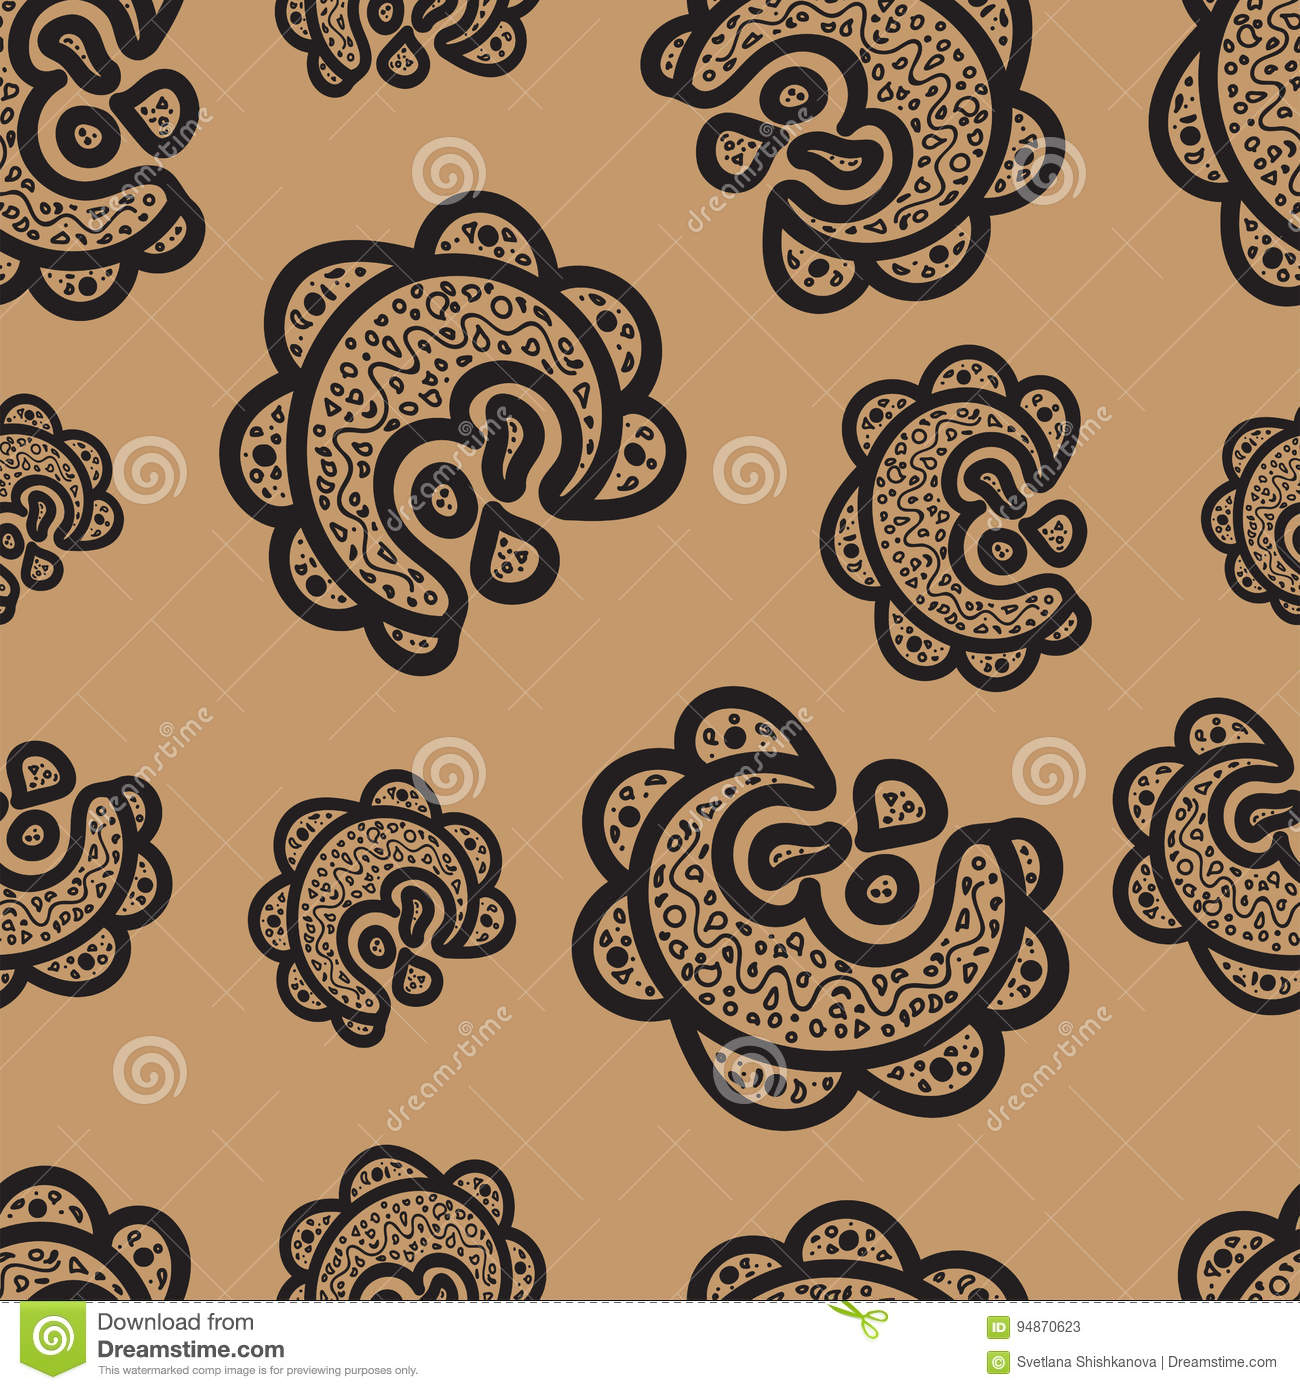 seamless doodle coffee pattern - photo #16